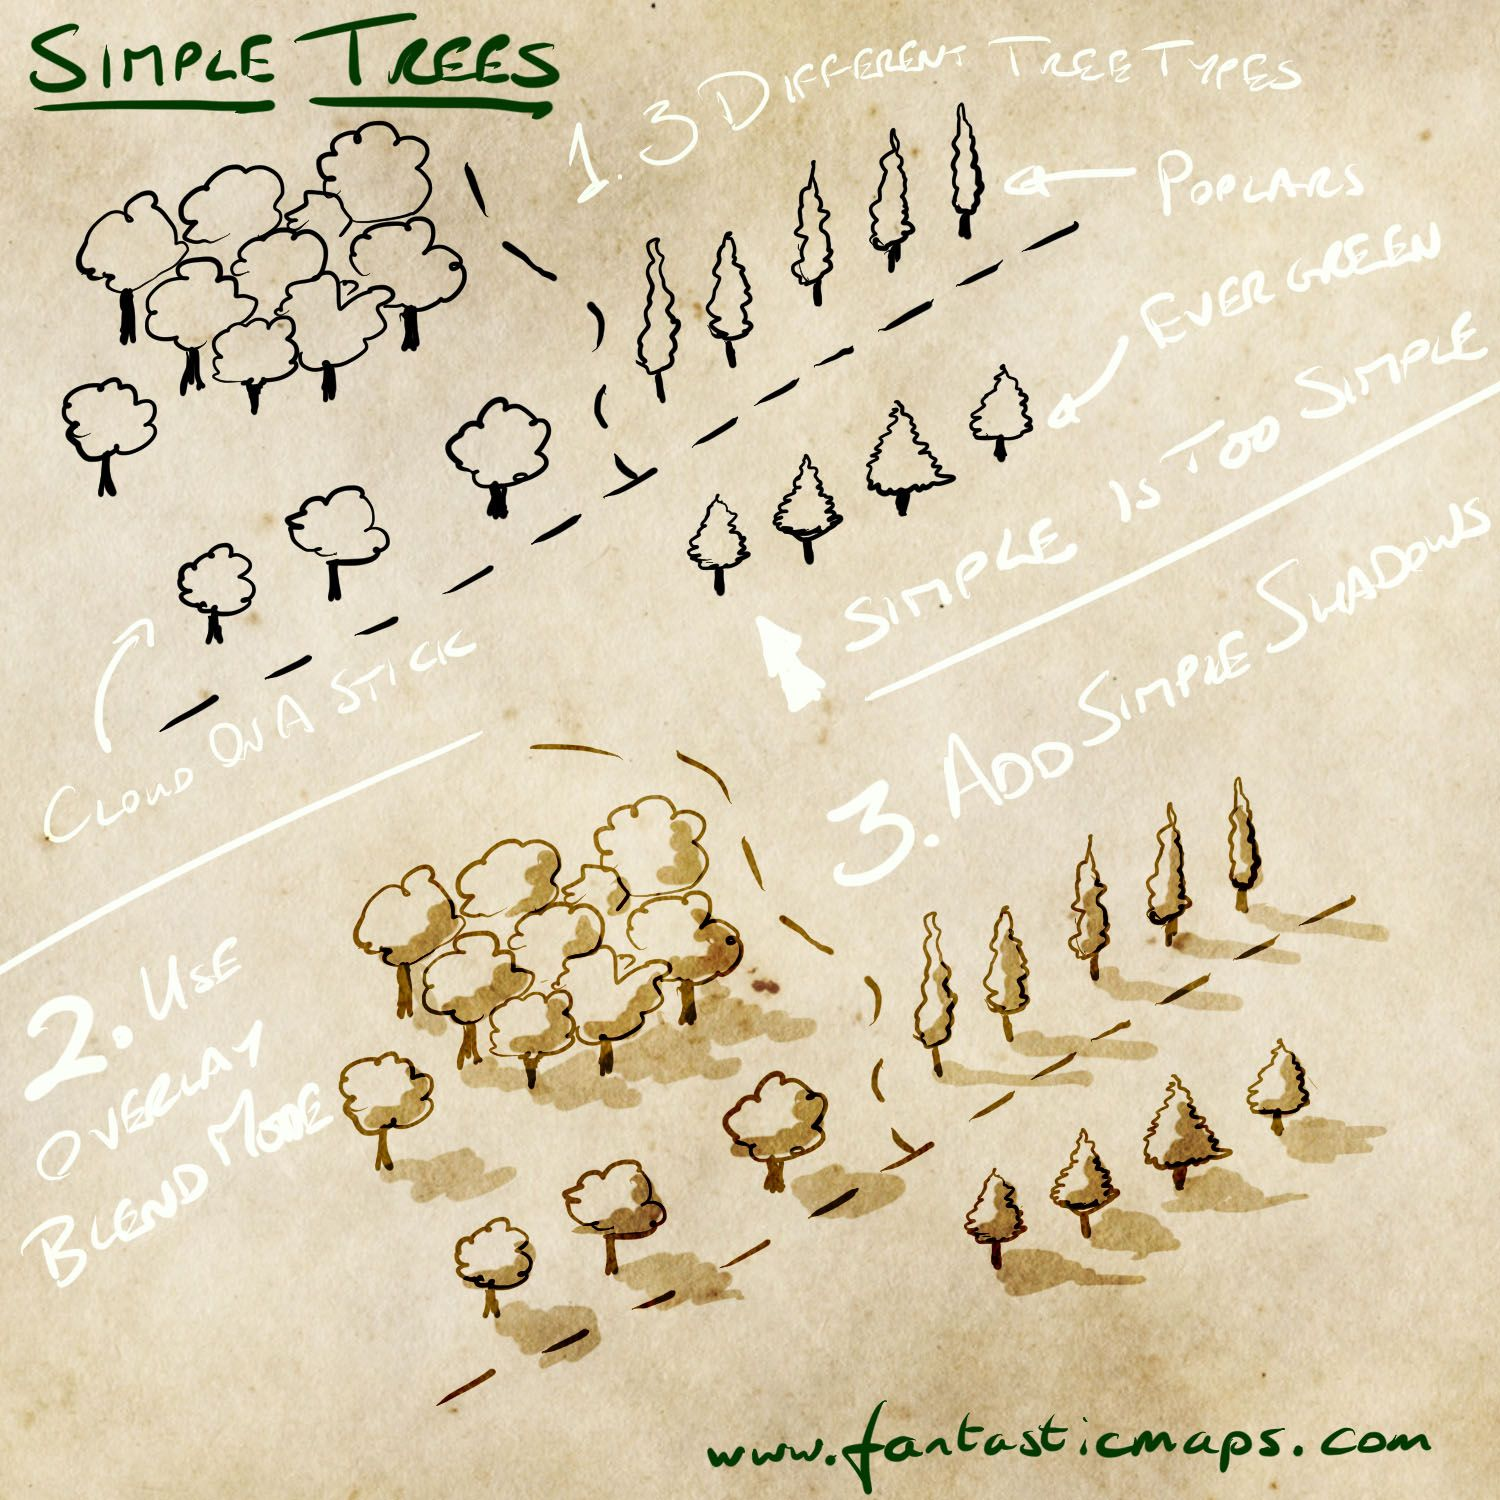 It's easy to draw Middle Earth style trees on a map. Here's a simple walkthrough of three different tree styles.